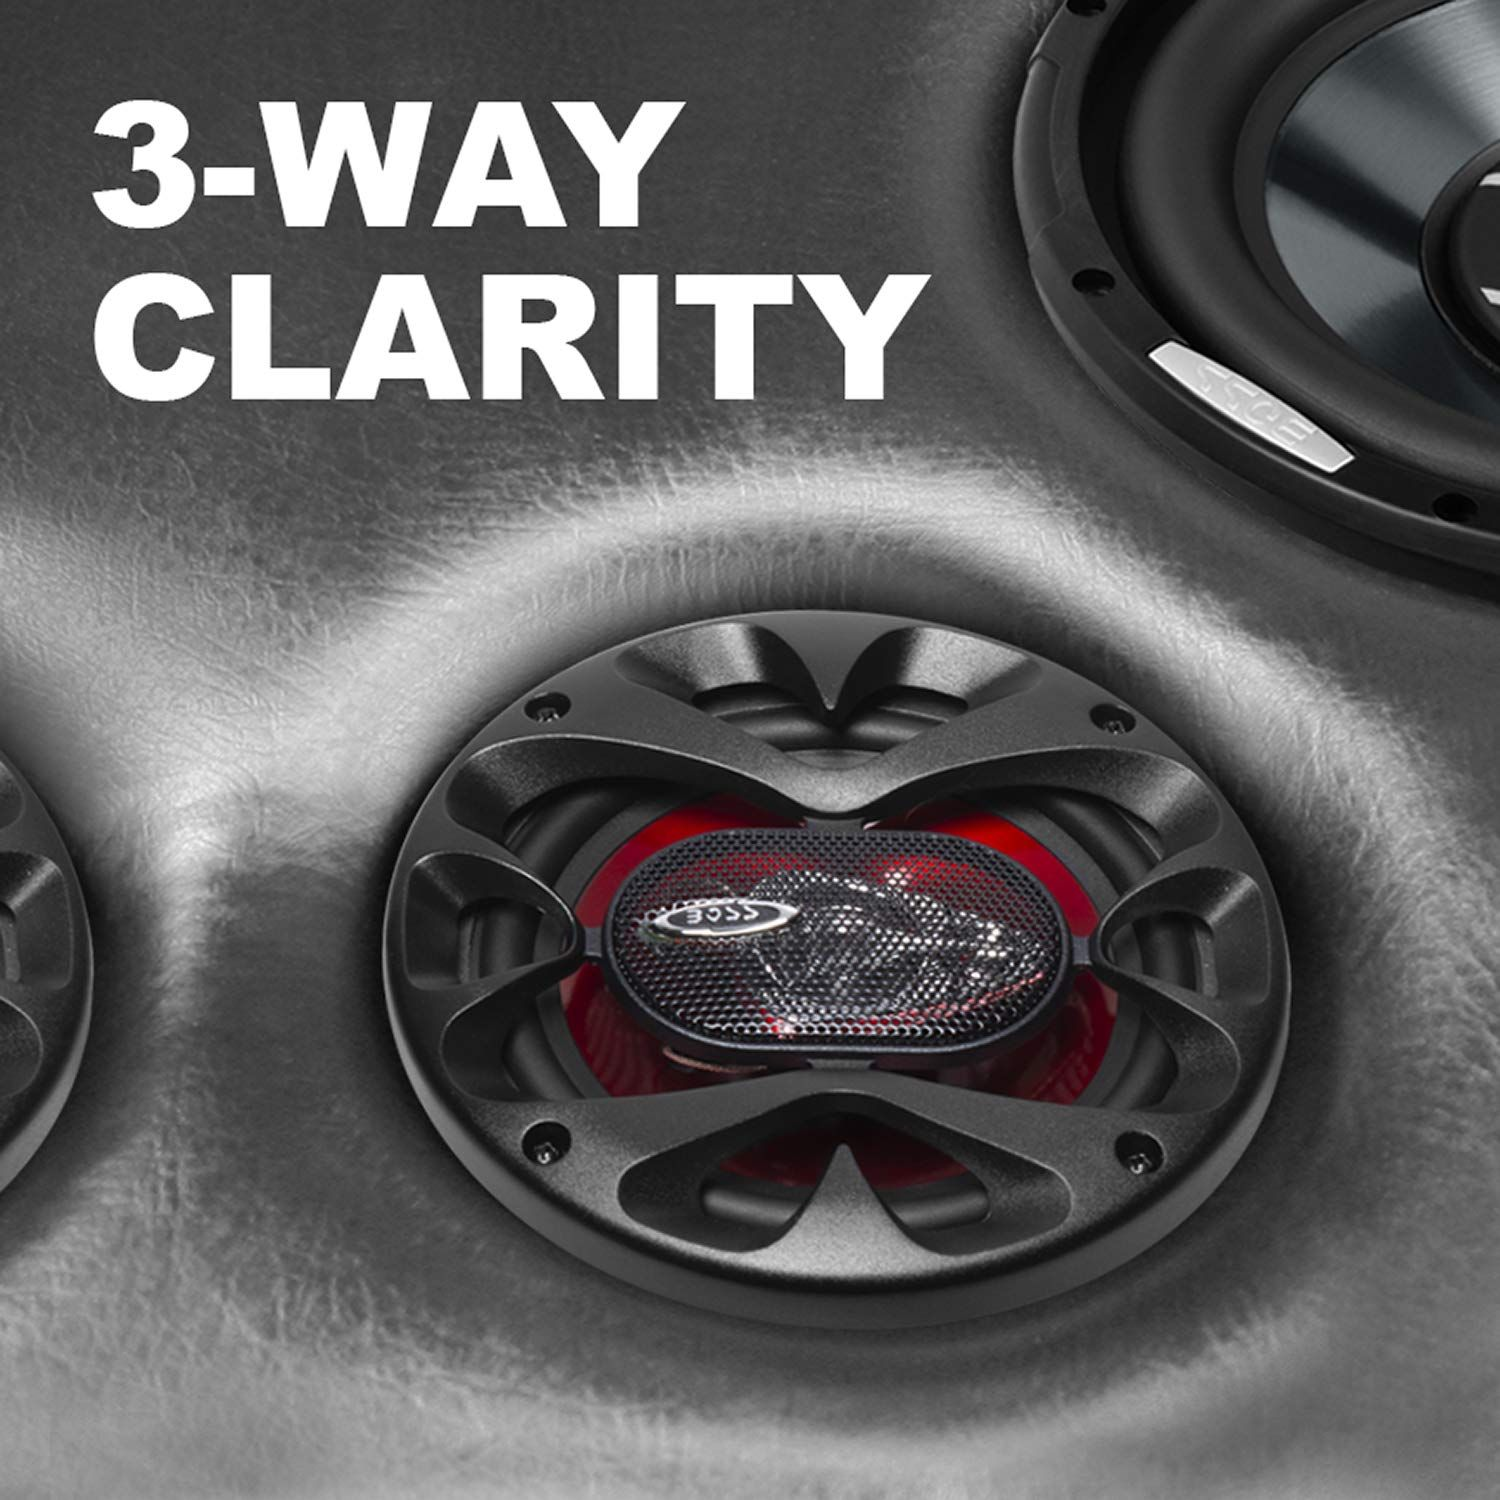 Sold in Pairs 300 Watts of Power Per Pair and 150 Watts Each 3 Way Full Range 6.5 Inch BOSS Audio CH6530 Car Speakers Easy Mounting